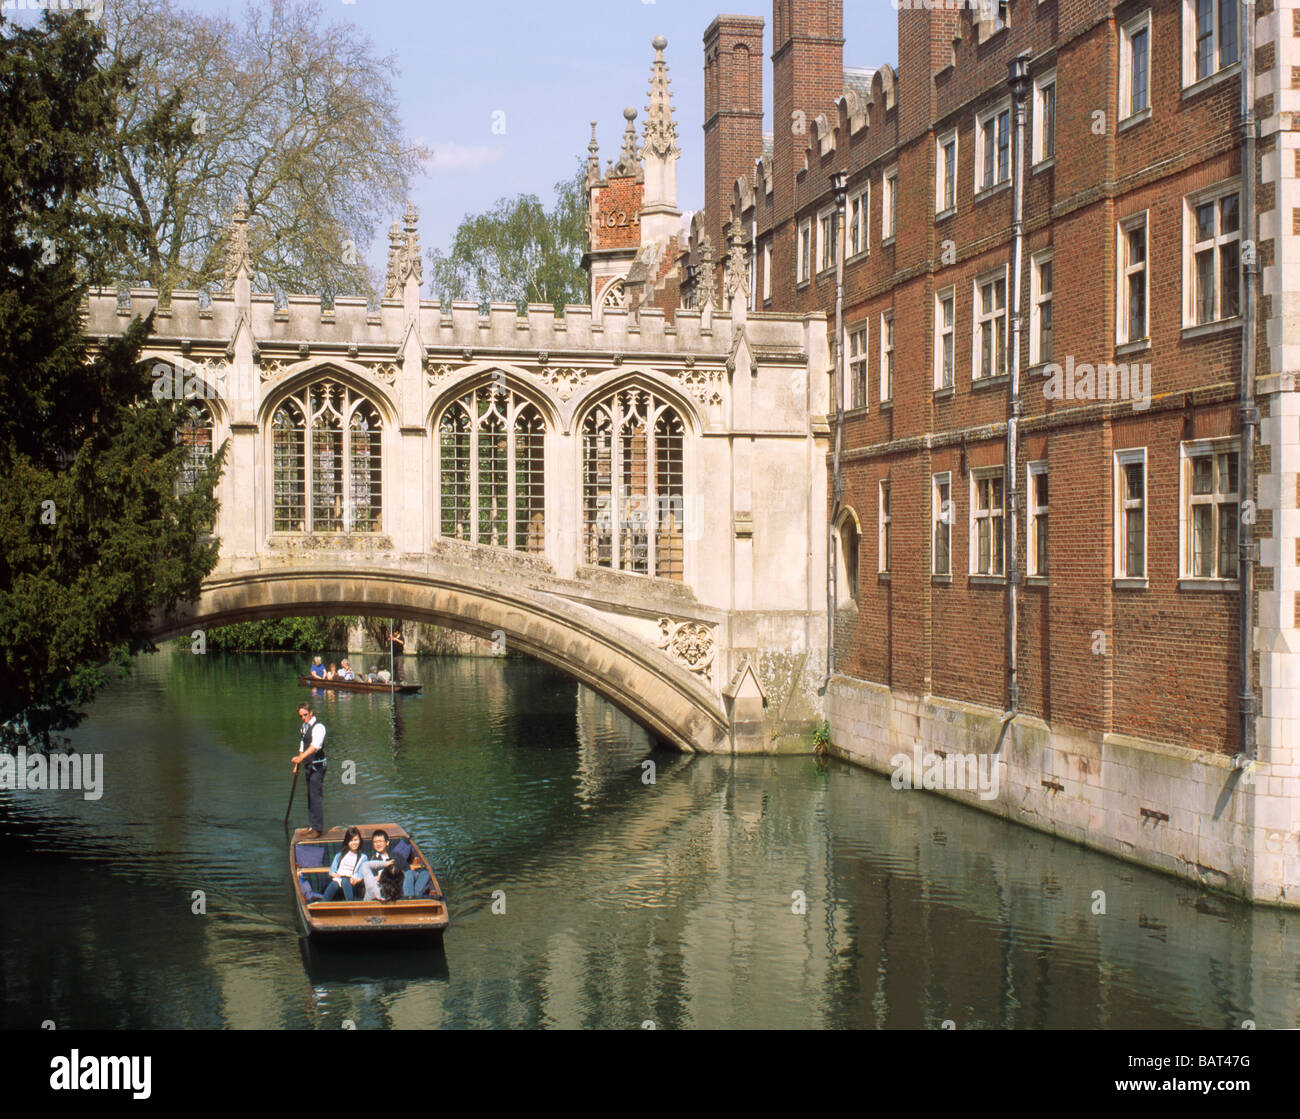 England Cambridge Punting on the Backs by StJohns college - Stock Image